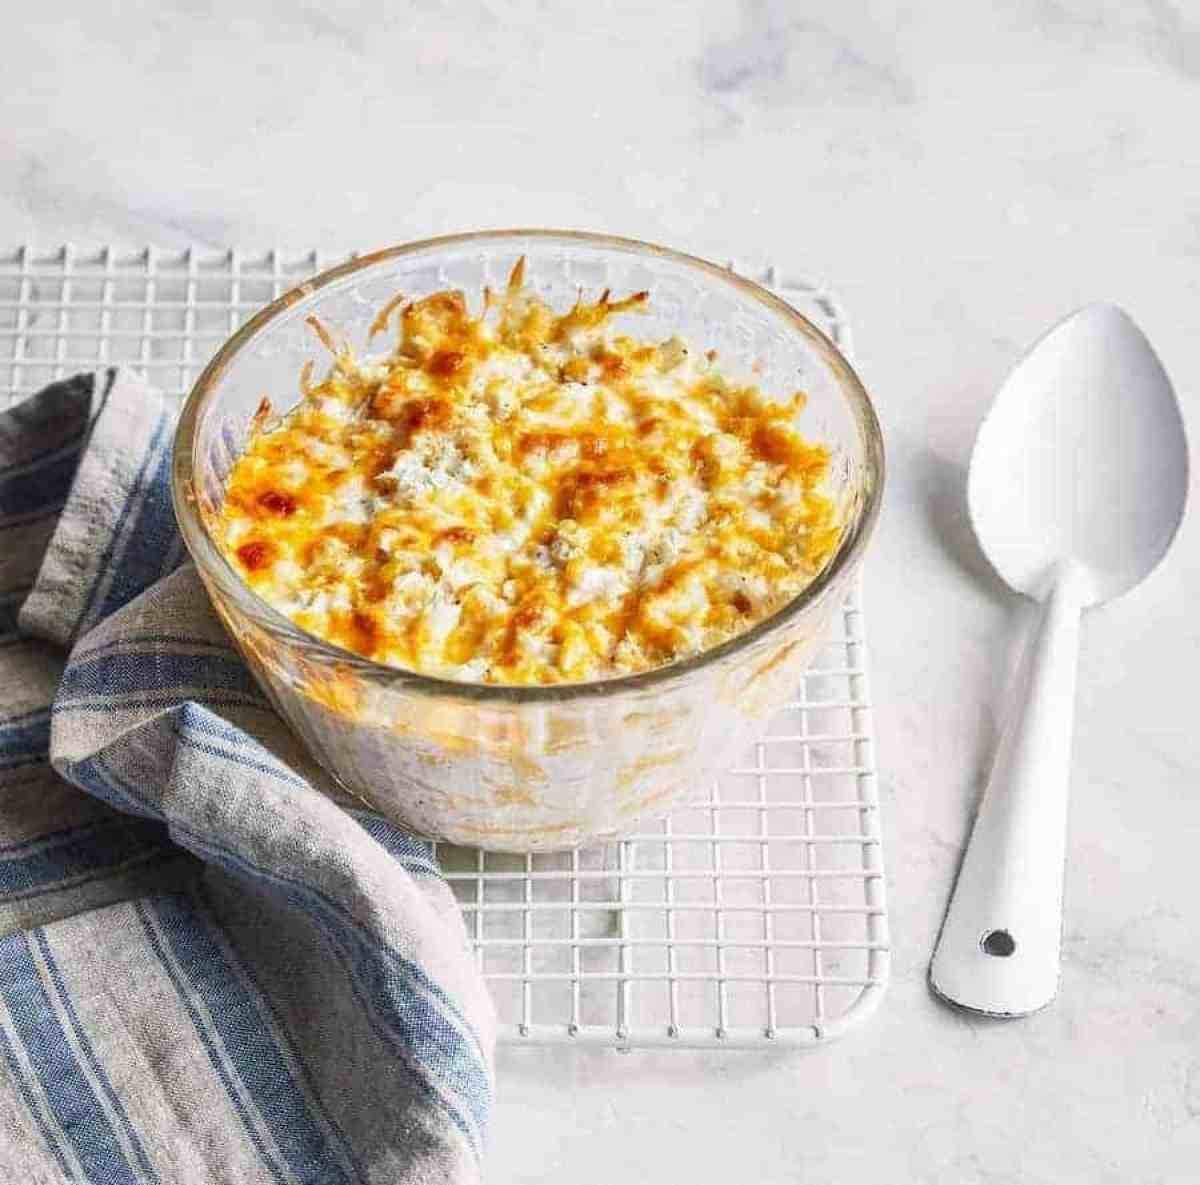 Instant Pot Low Carb Keto Cauliflower and Cheese is a creamy, delicious side dish that you can make in your pressure cooker for the ultimate low carb comfort food!